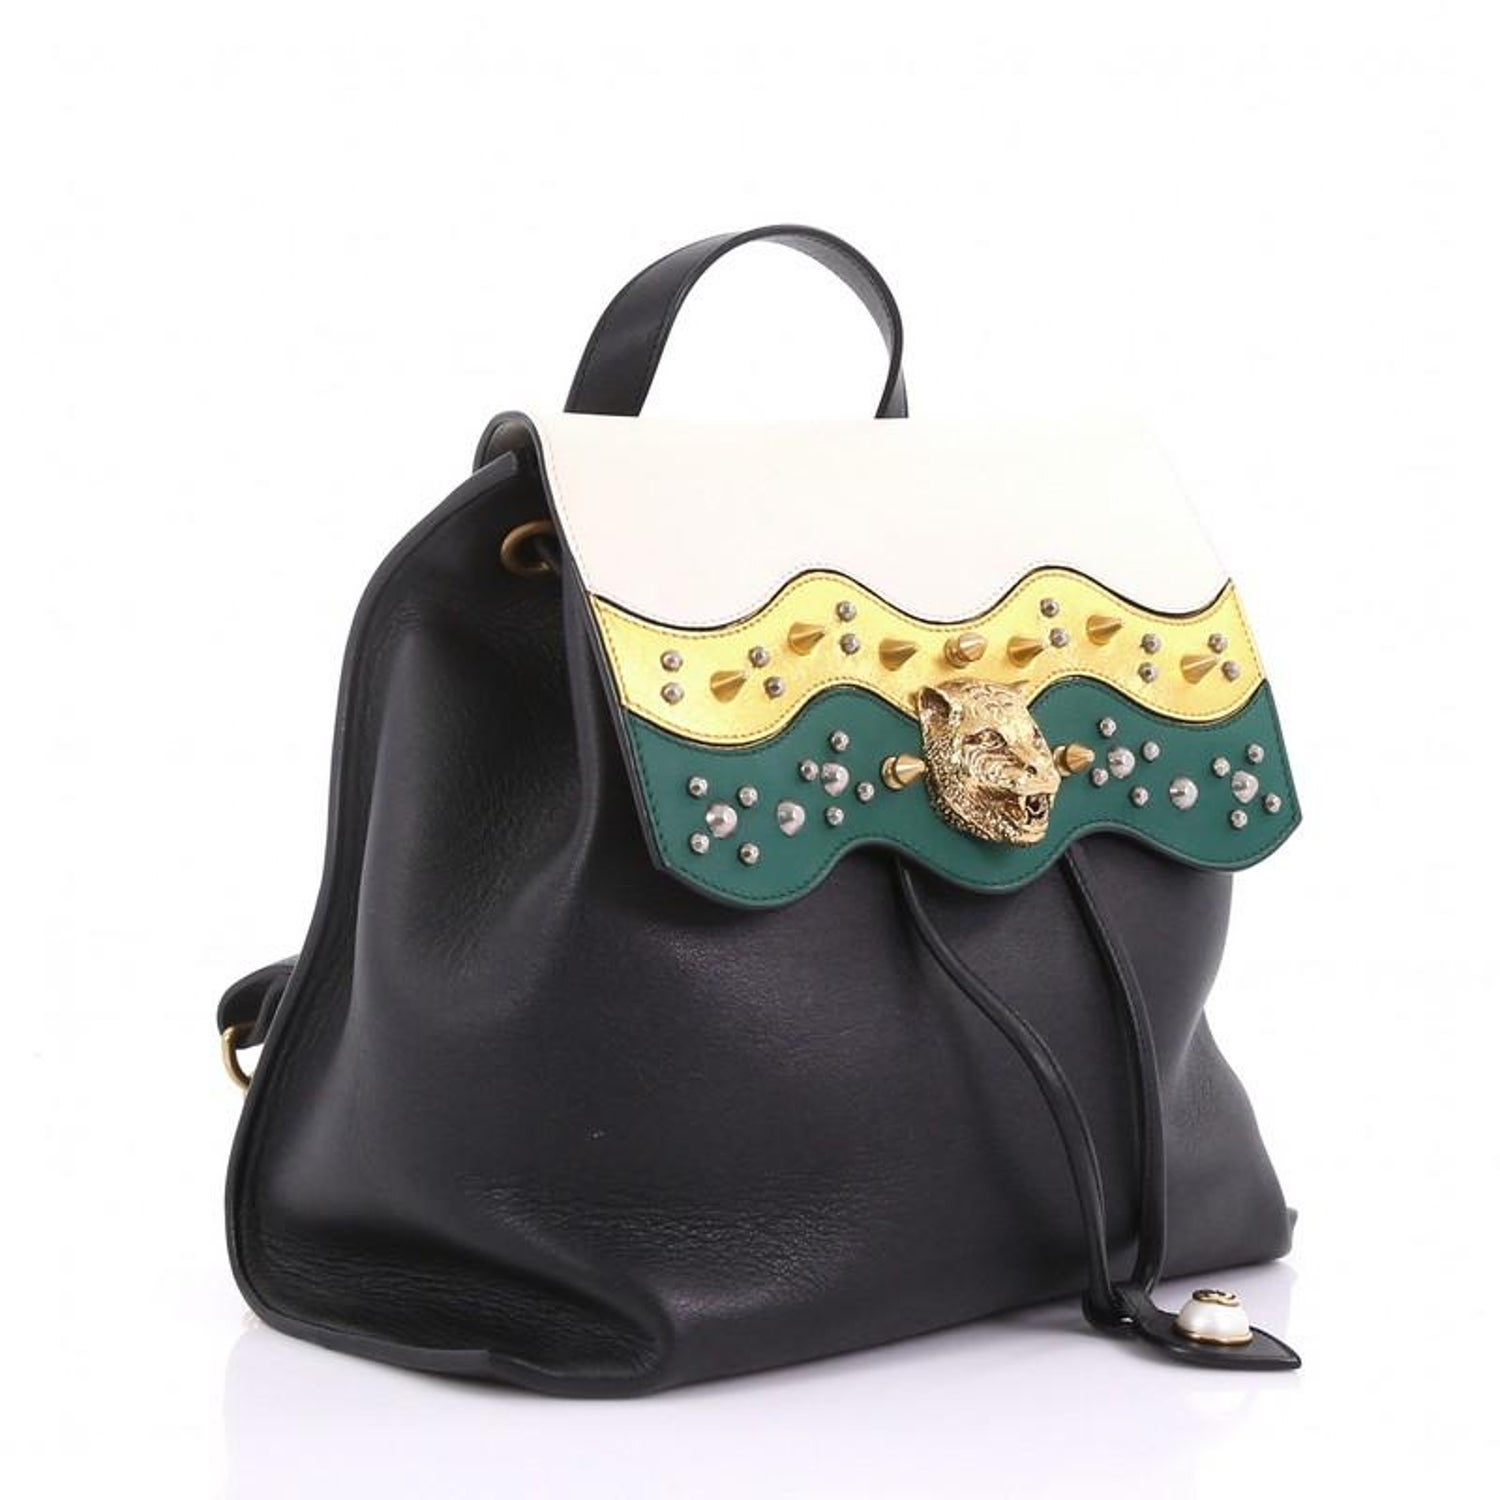 6e3625418312bd Gucci Animalier Malin Backpack Studded Leather Medium For Sale at 1stdibs